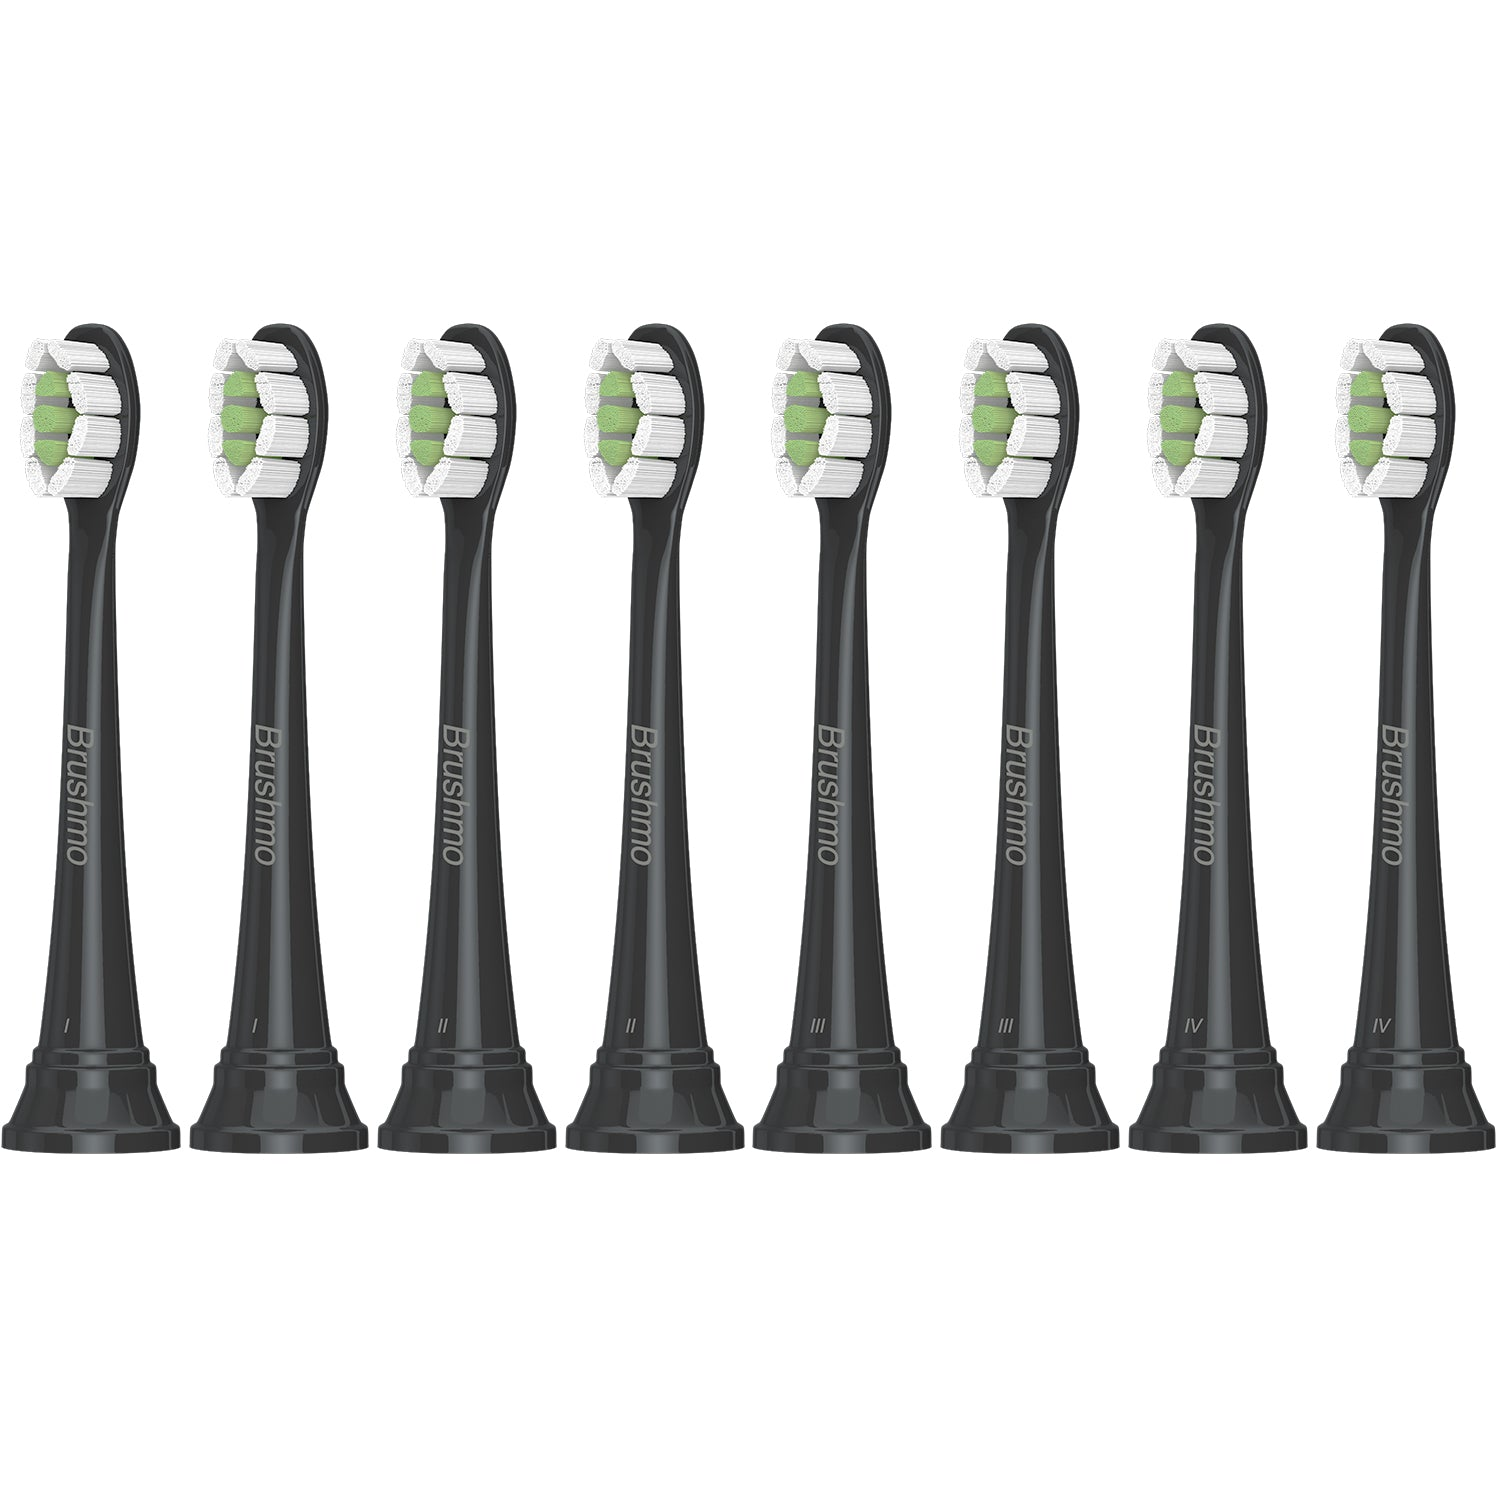 Brushmo compact replacement toothbrush heads for Philips Sonicare DiamondClean, Black